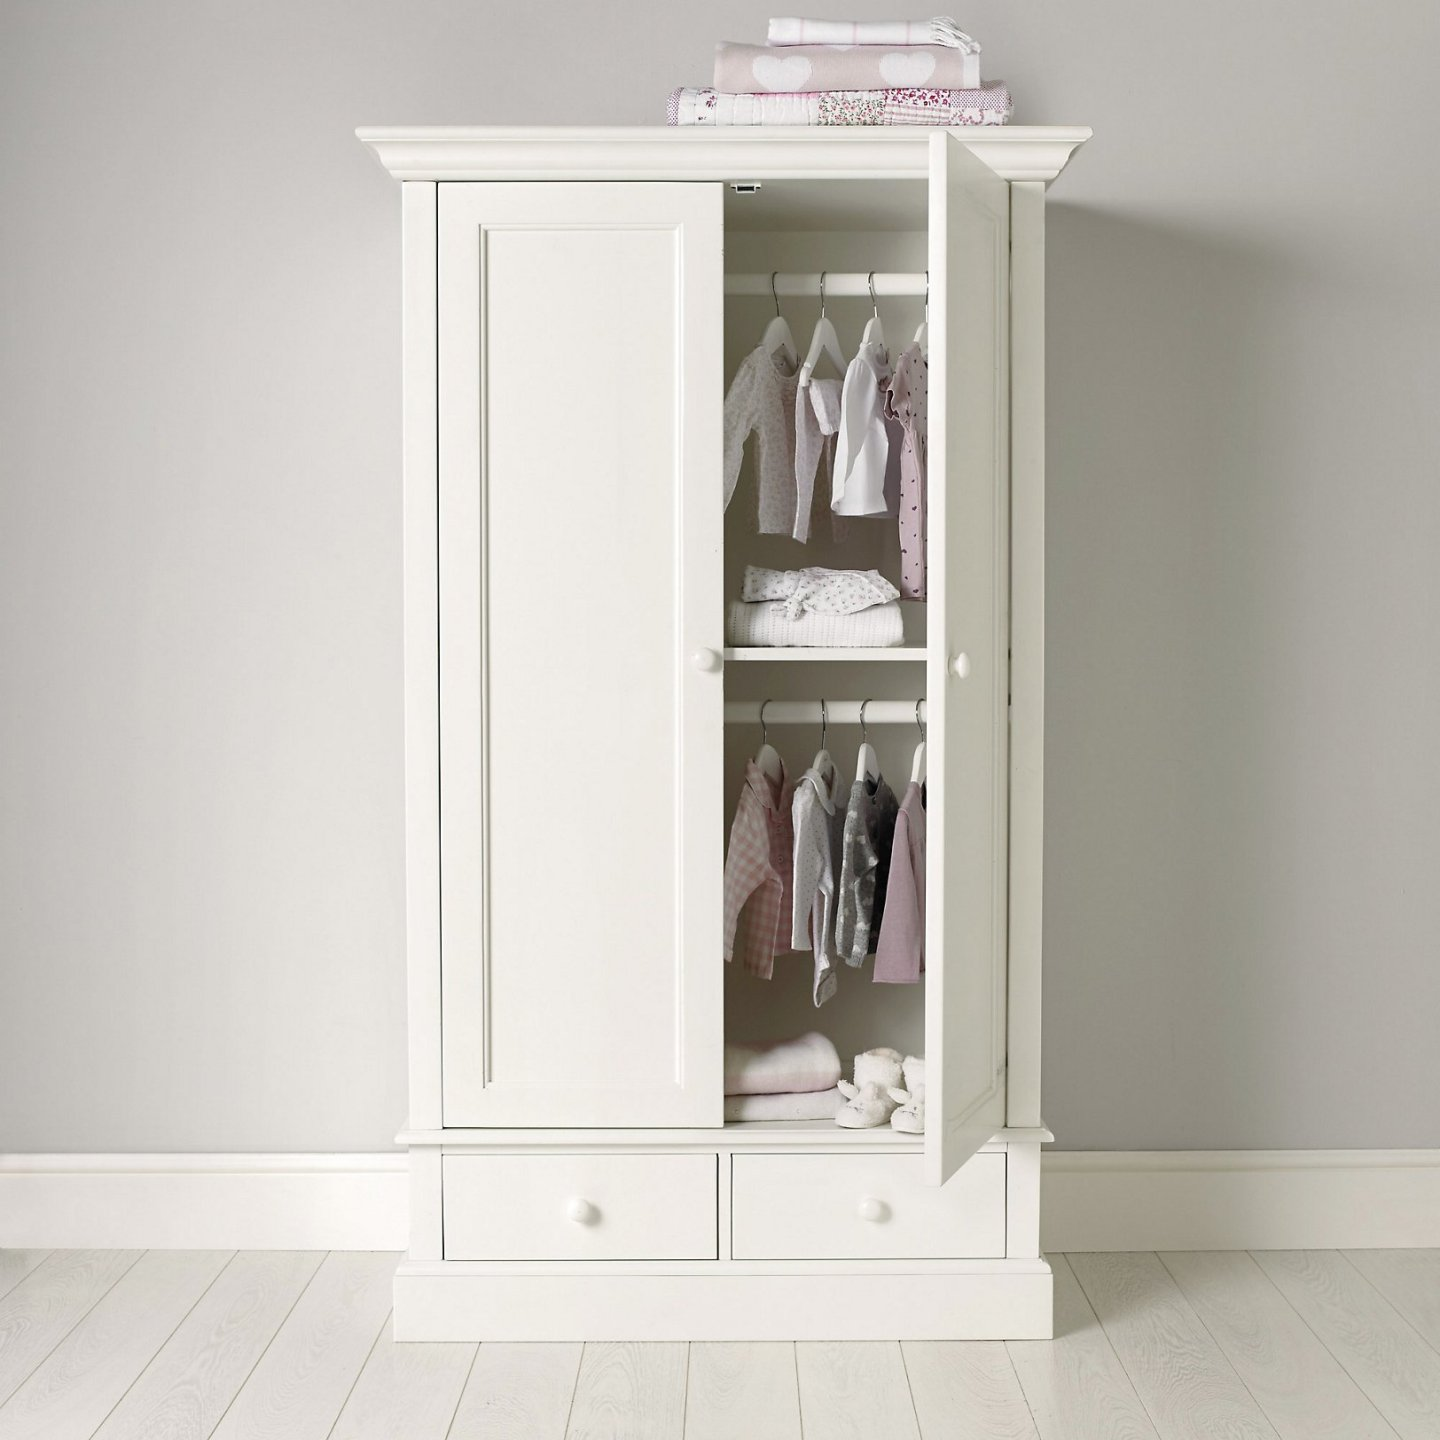 White Company childrens wardrobe